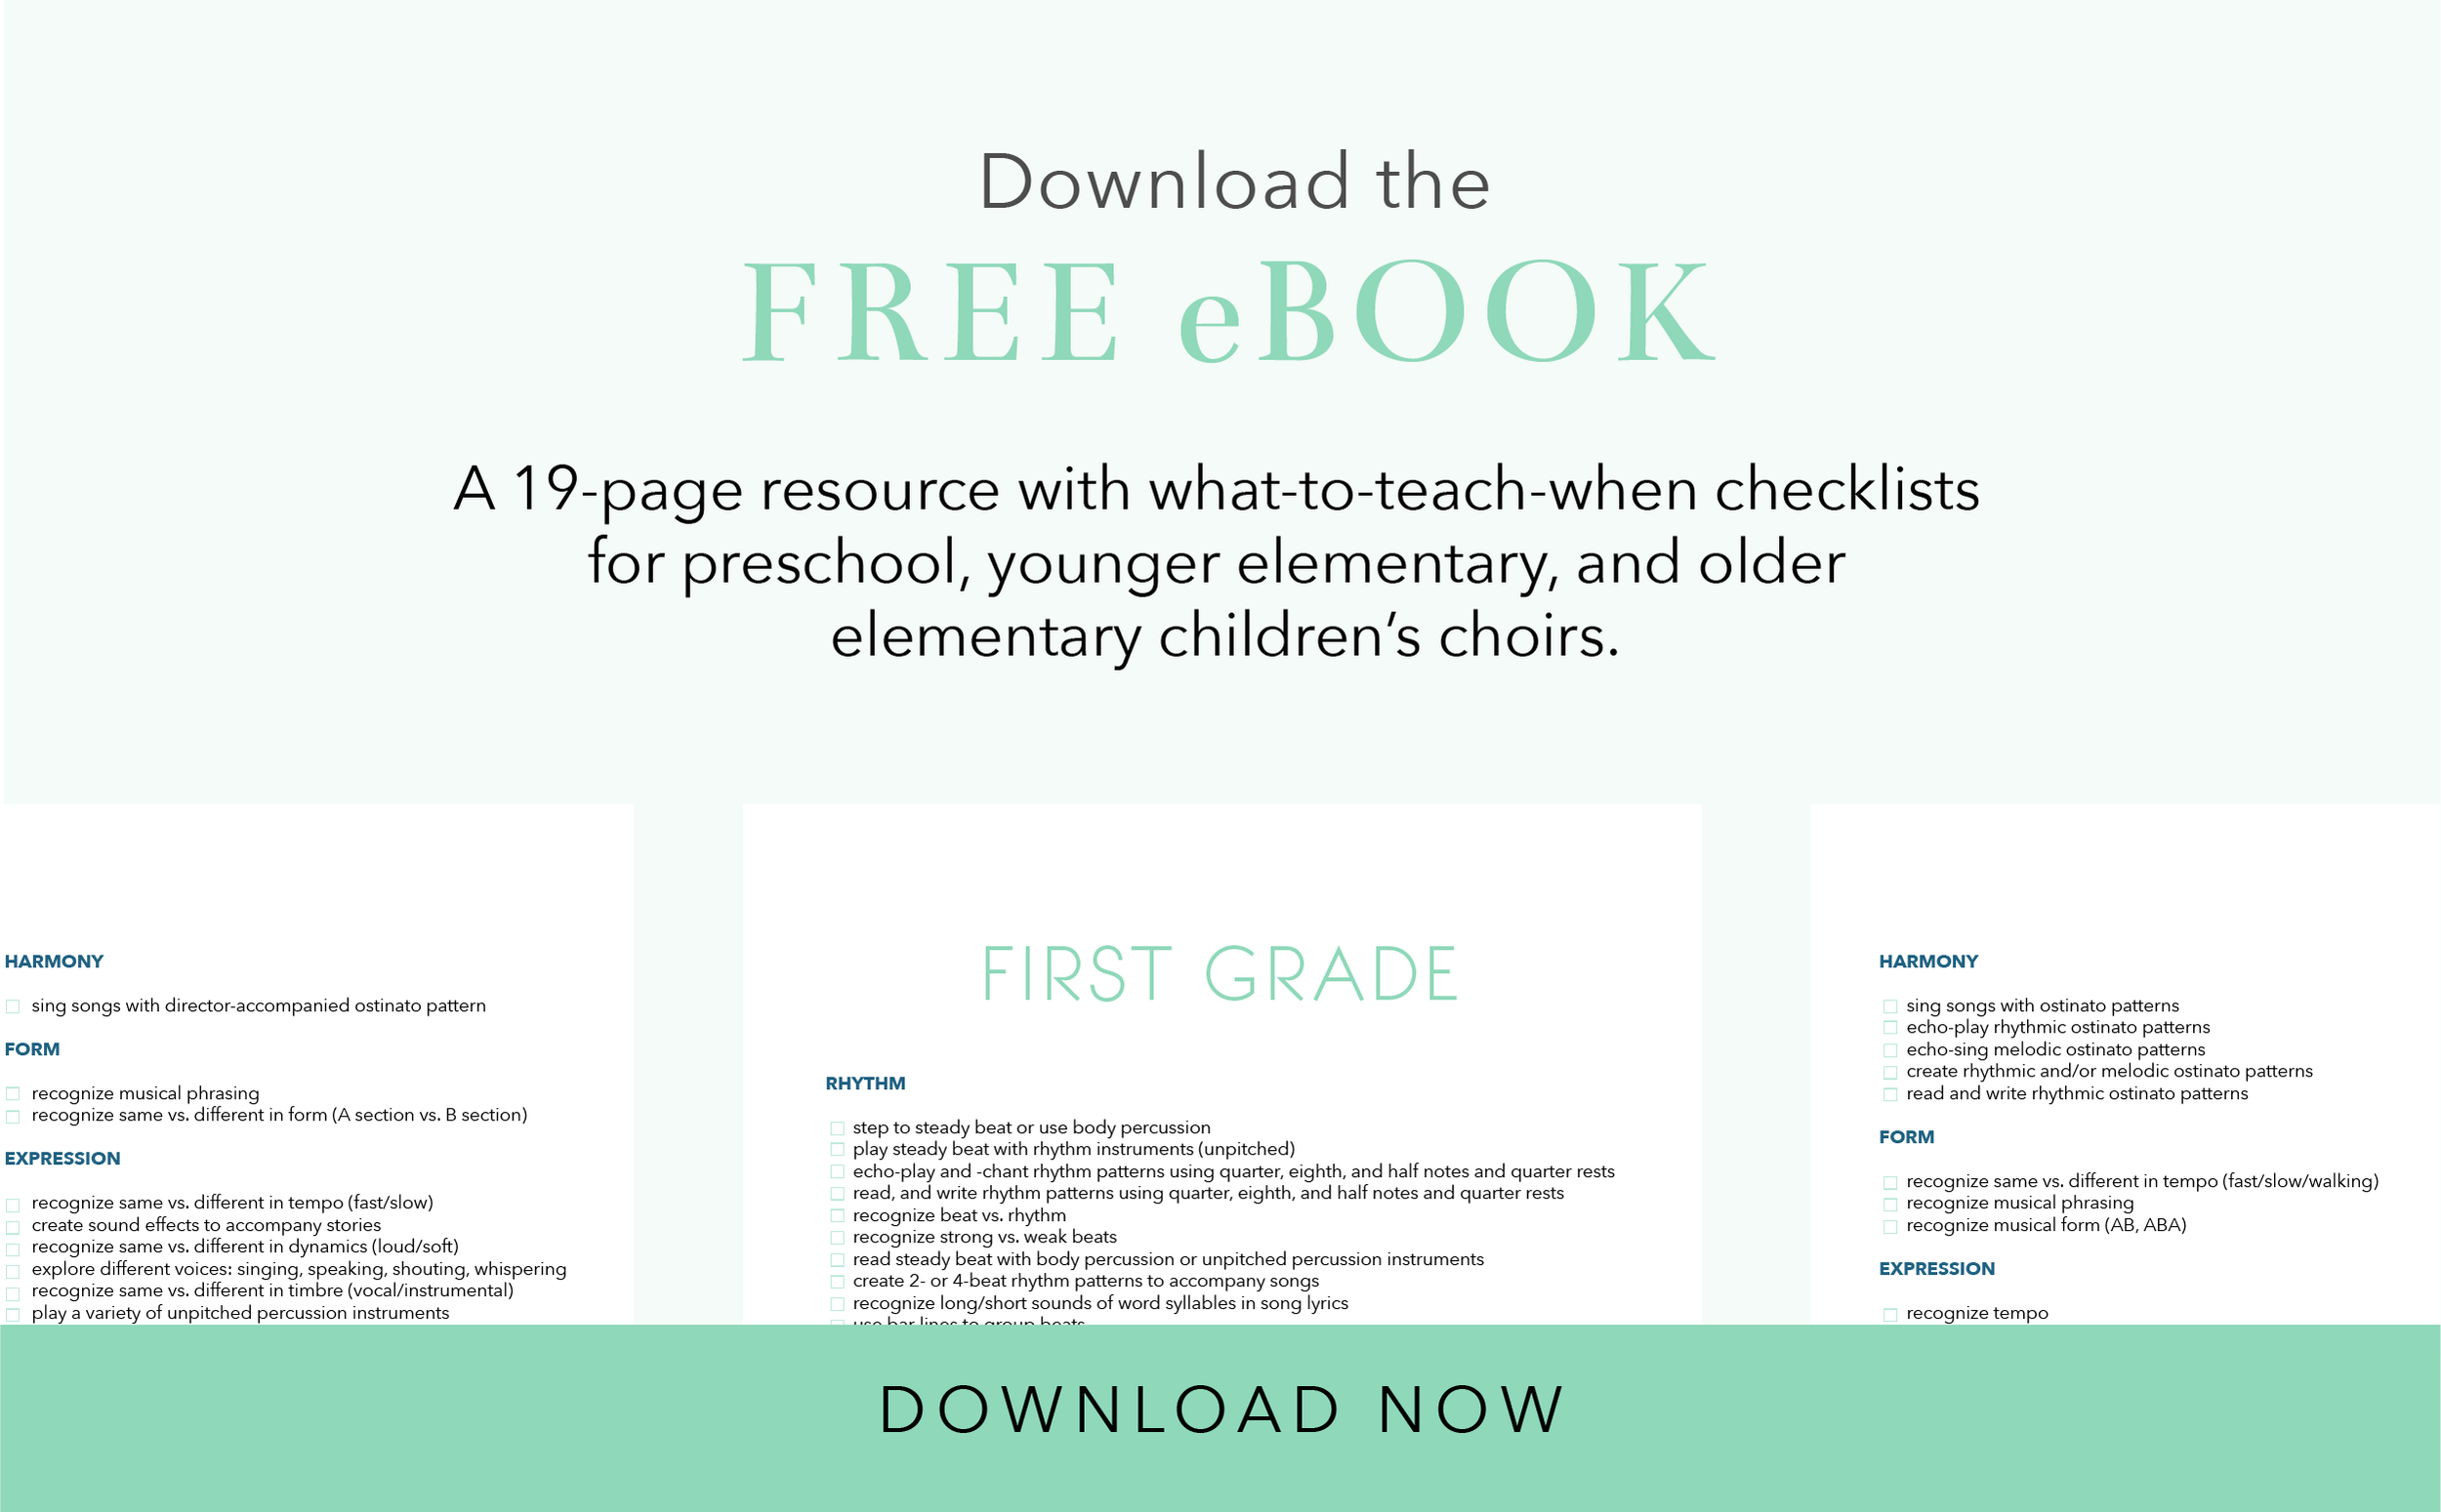 What to Teach When in Preschool Choirs_Free eBook by Ashley Danyew.png